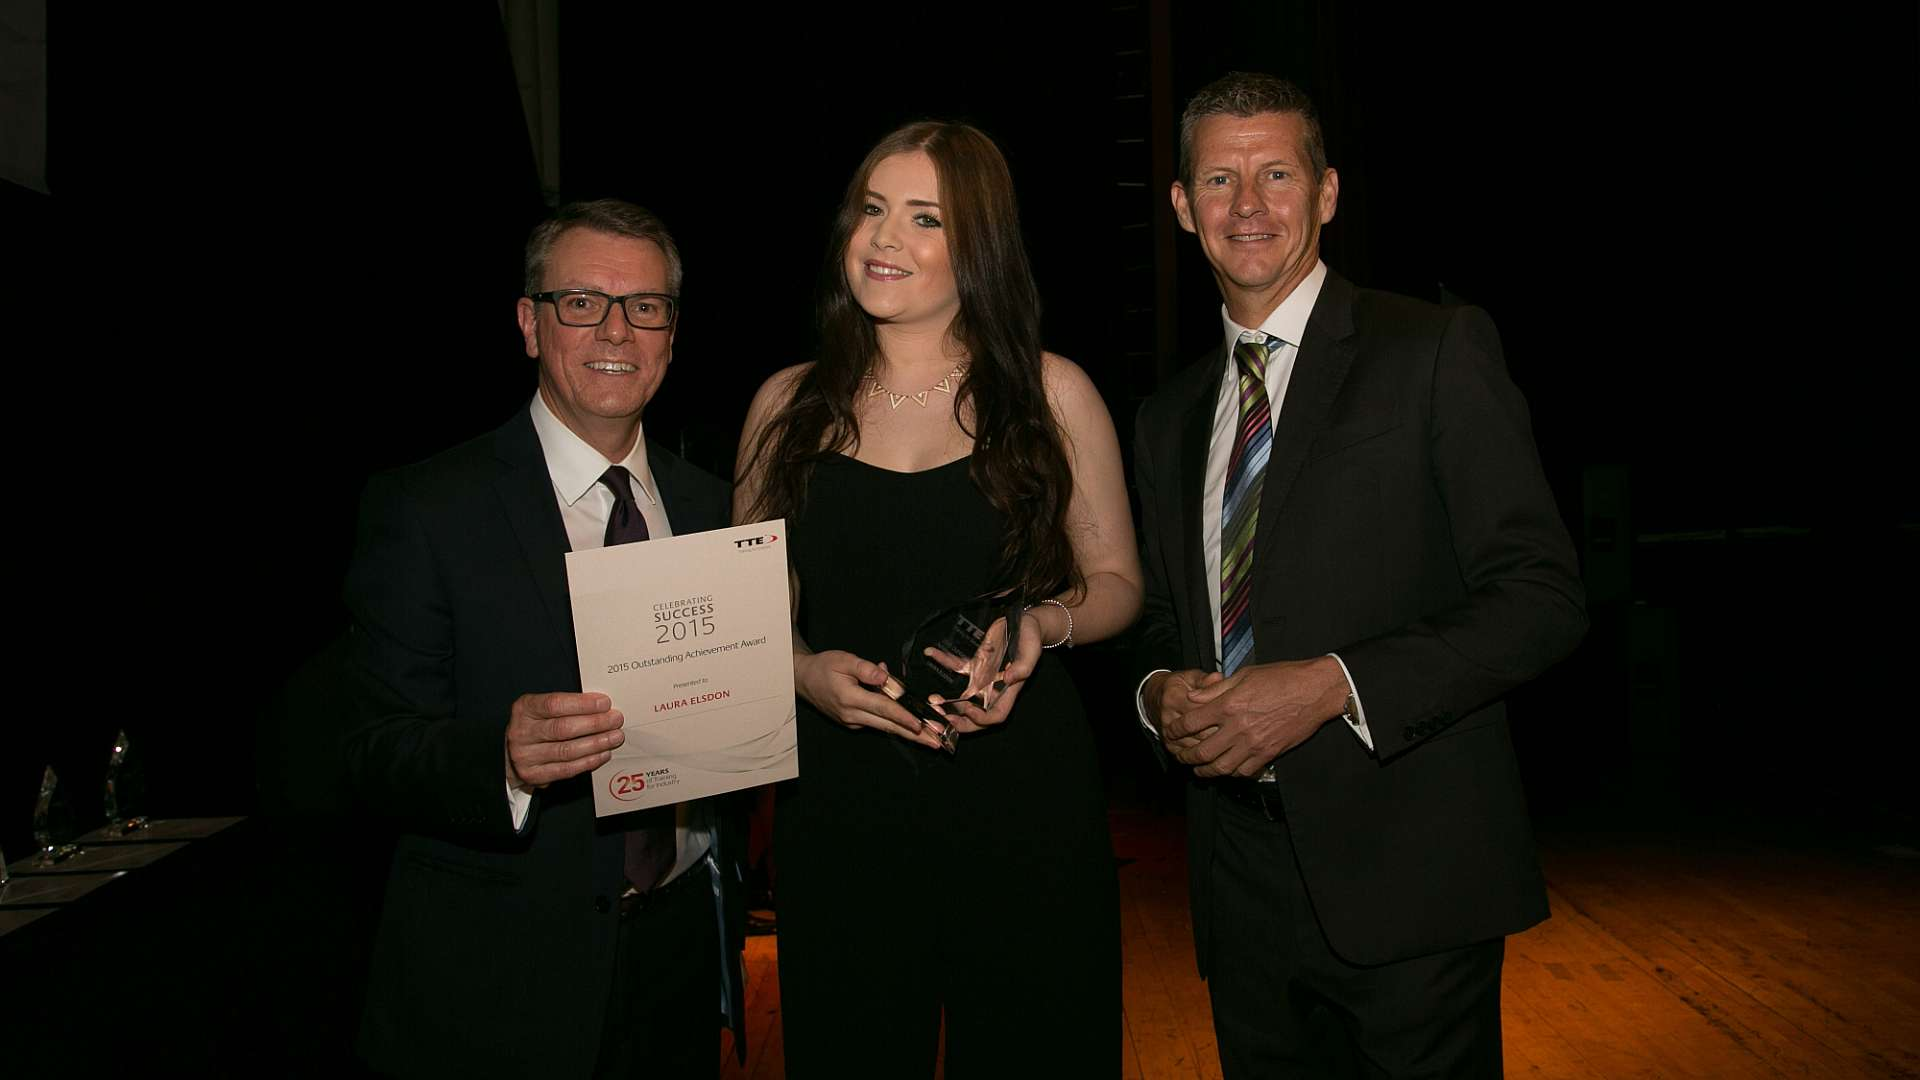 Laura Elsdon, apprentice at CPI, receives acknowledgement of her outstanding achievement at TTE Awards